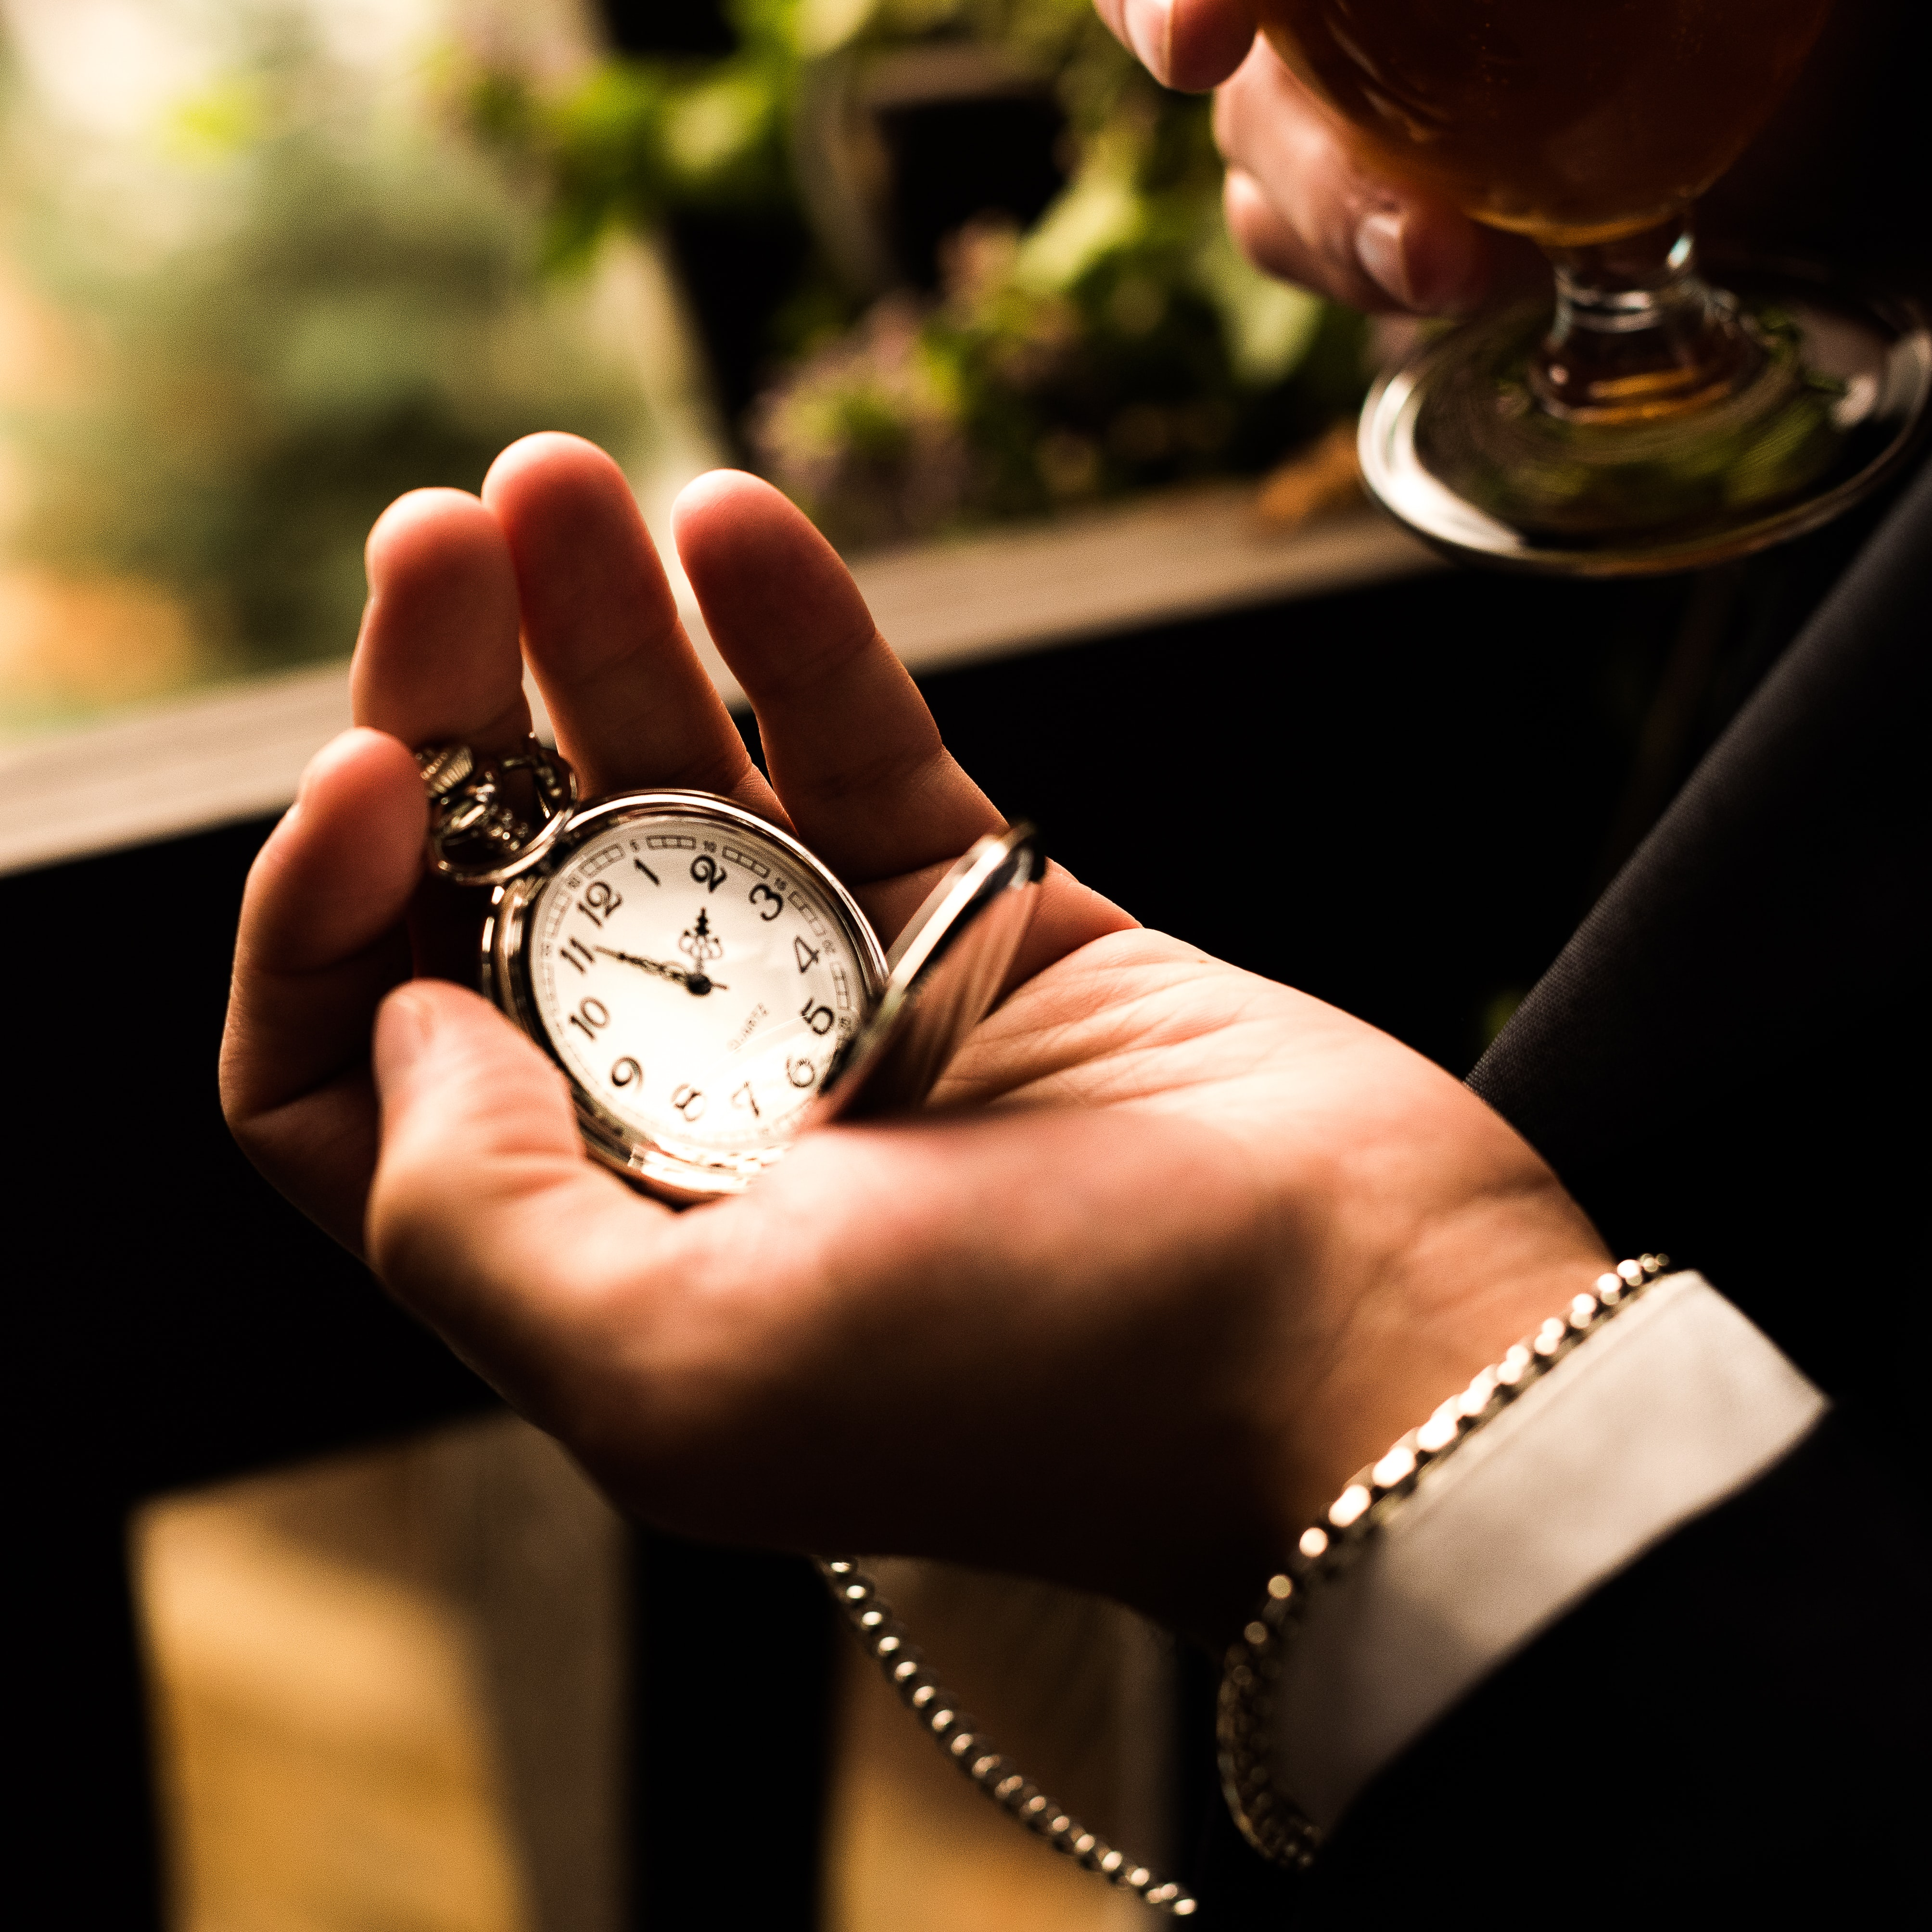 person holding silver-colored pocket watch